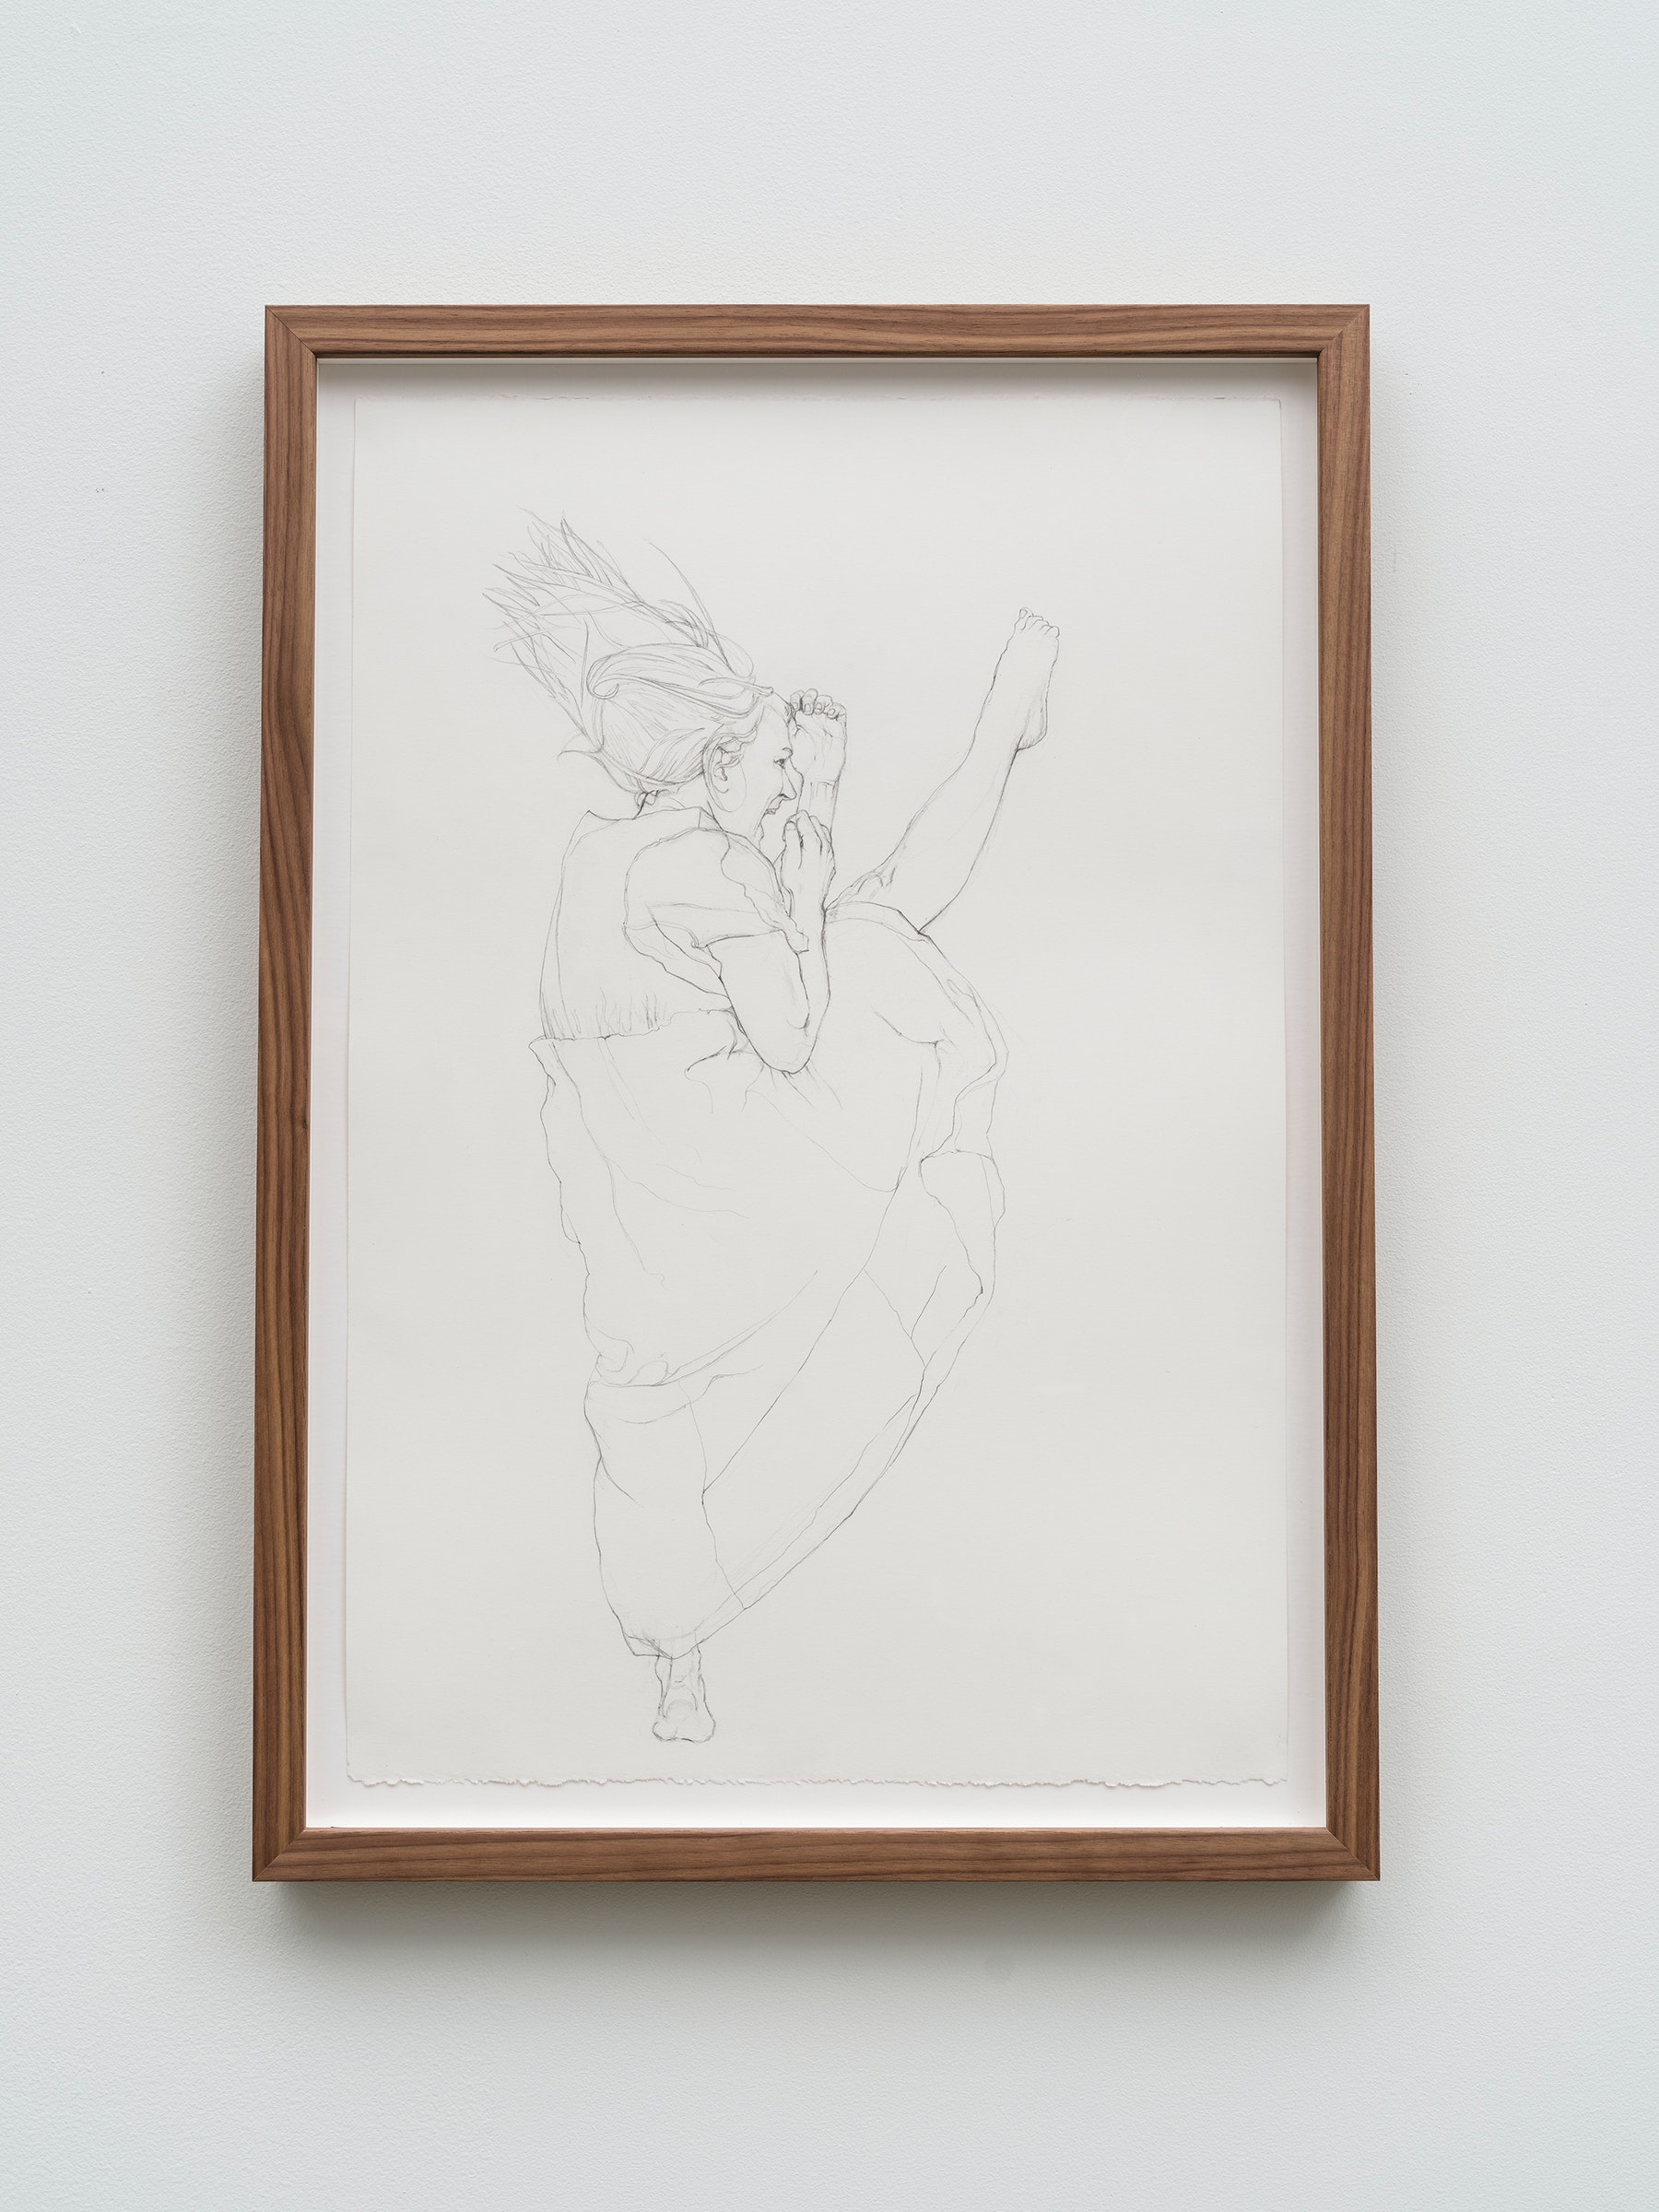 """Andrea Bowers """"Self-Defense Drawings - Study of Ivy,"""" 2021 Graphite on paper 22 ³⁄₈"""" x 15"""" [HxW] (56.81 x 38.1 cm) paper size; 25 ¹⁄₄"""" x 17 ³⁄₄"""" x 2"""" [HxWxD] (64.13 x 45.08 x 5.08 cm) framed Inventory #BOW592 Courtesy of the artist and Vielmetter Los Angeles Photo credit: Jeff McLane"""